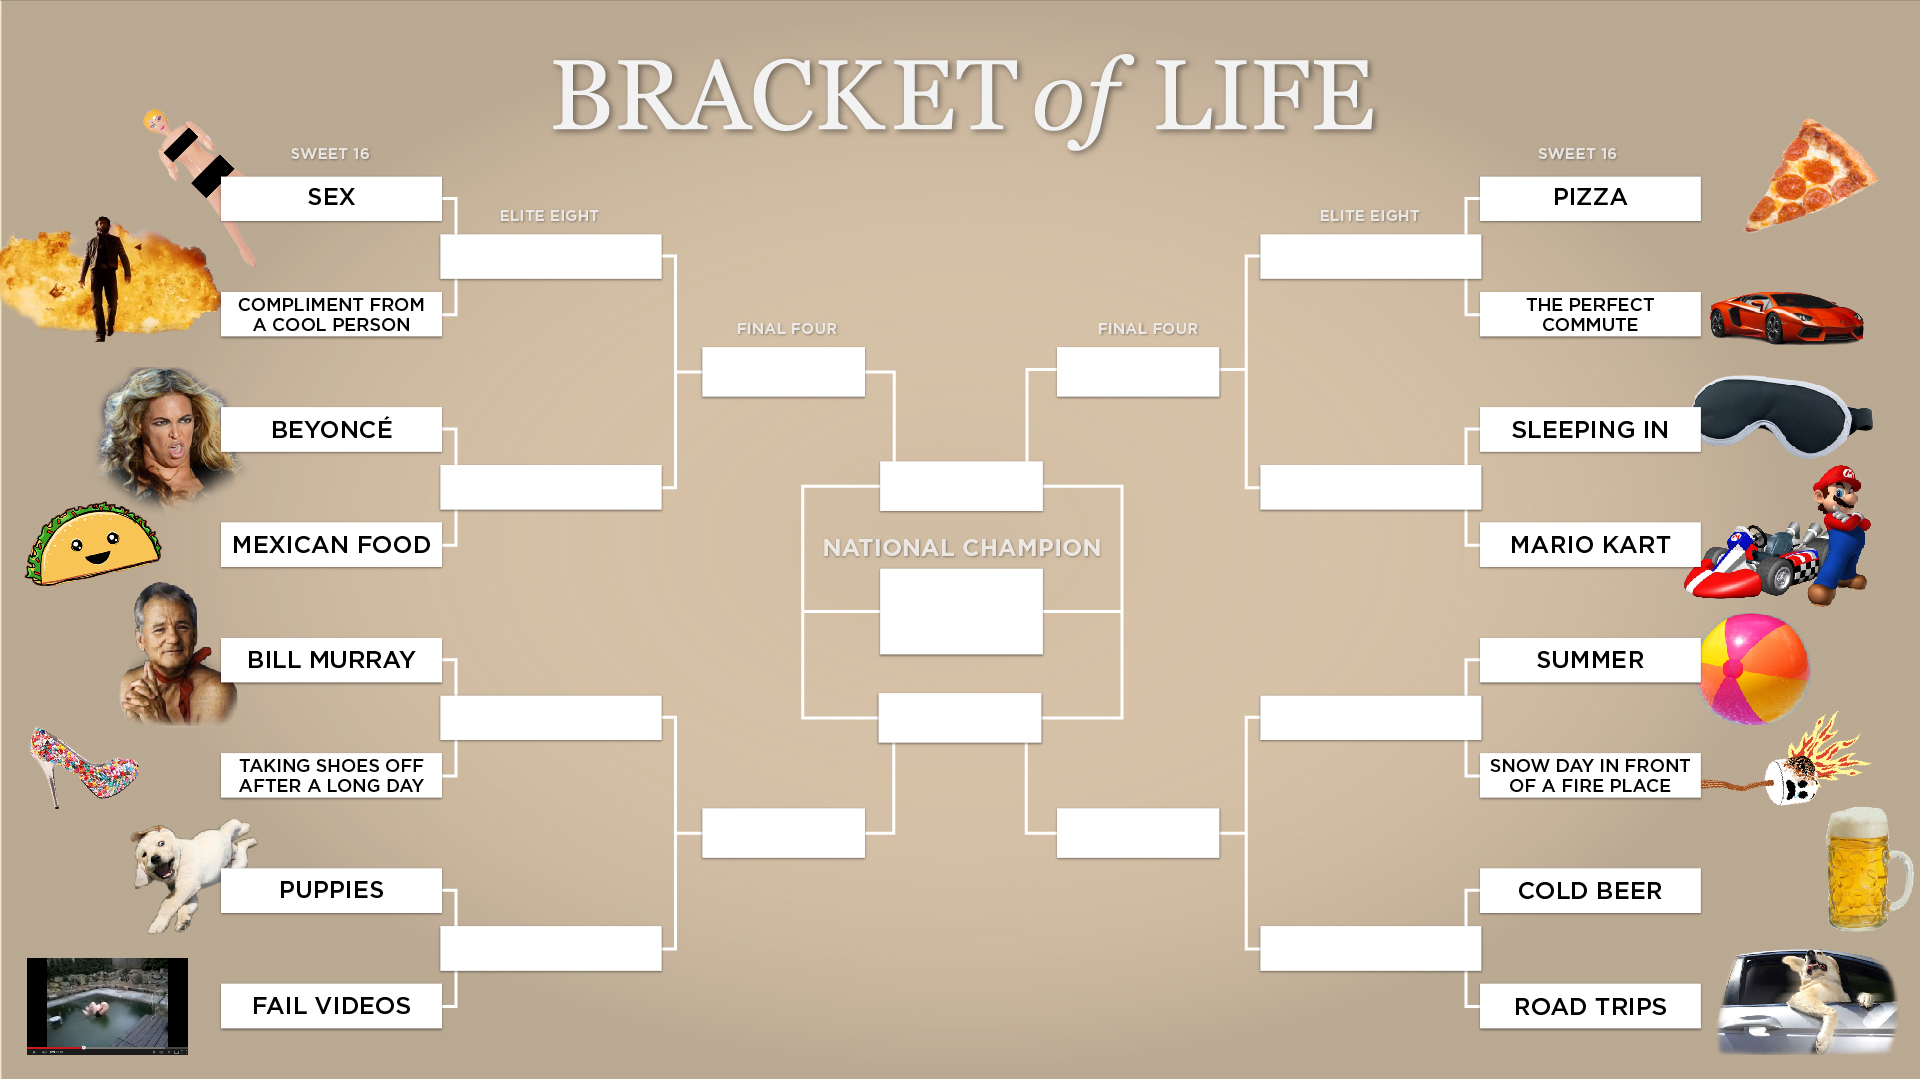 Open Thread - Life's REAL Brackets   Crooks and Liars